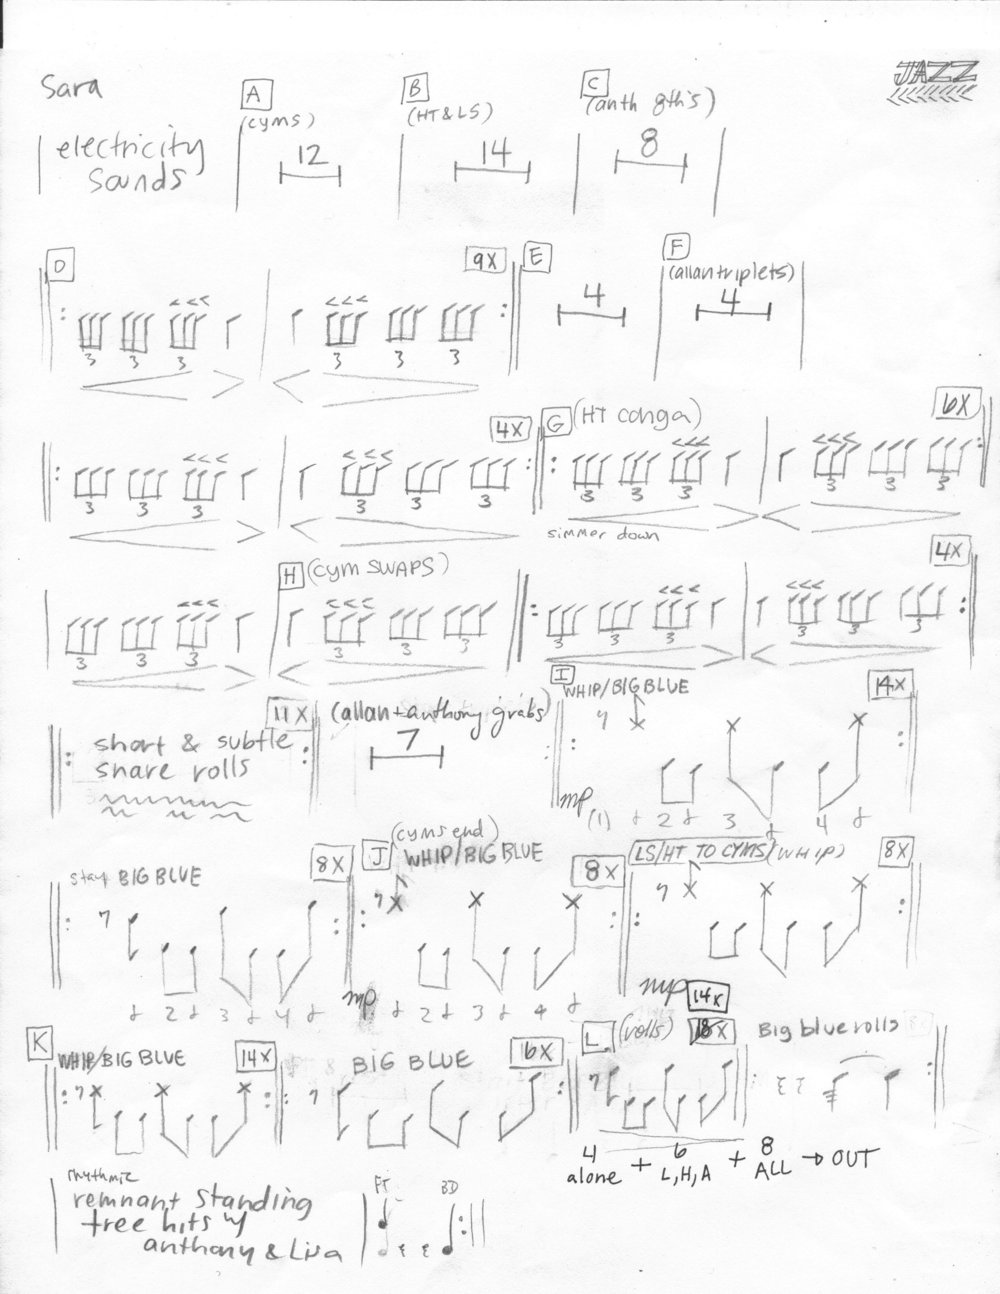 2. Sheet music for Jazz (Timber Sale) - 2015. This is the sheet music for 1 of 5 percussion parts in the song Jazz (Timber Sale). I wrote this composition in response to logging in the Jazz Timber Sale in Mount Hood National Forest for the artist collective Environmental Impact Statement, which I co-directed.